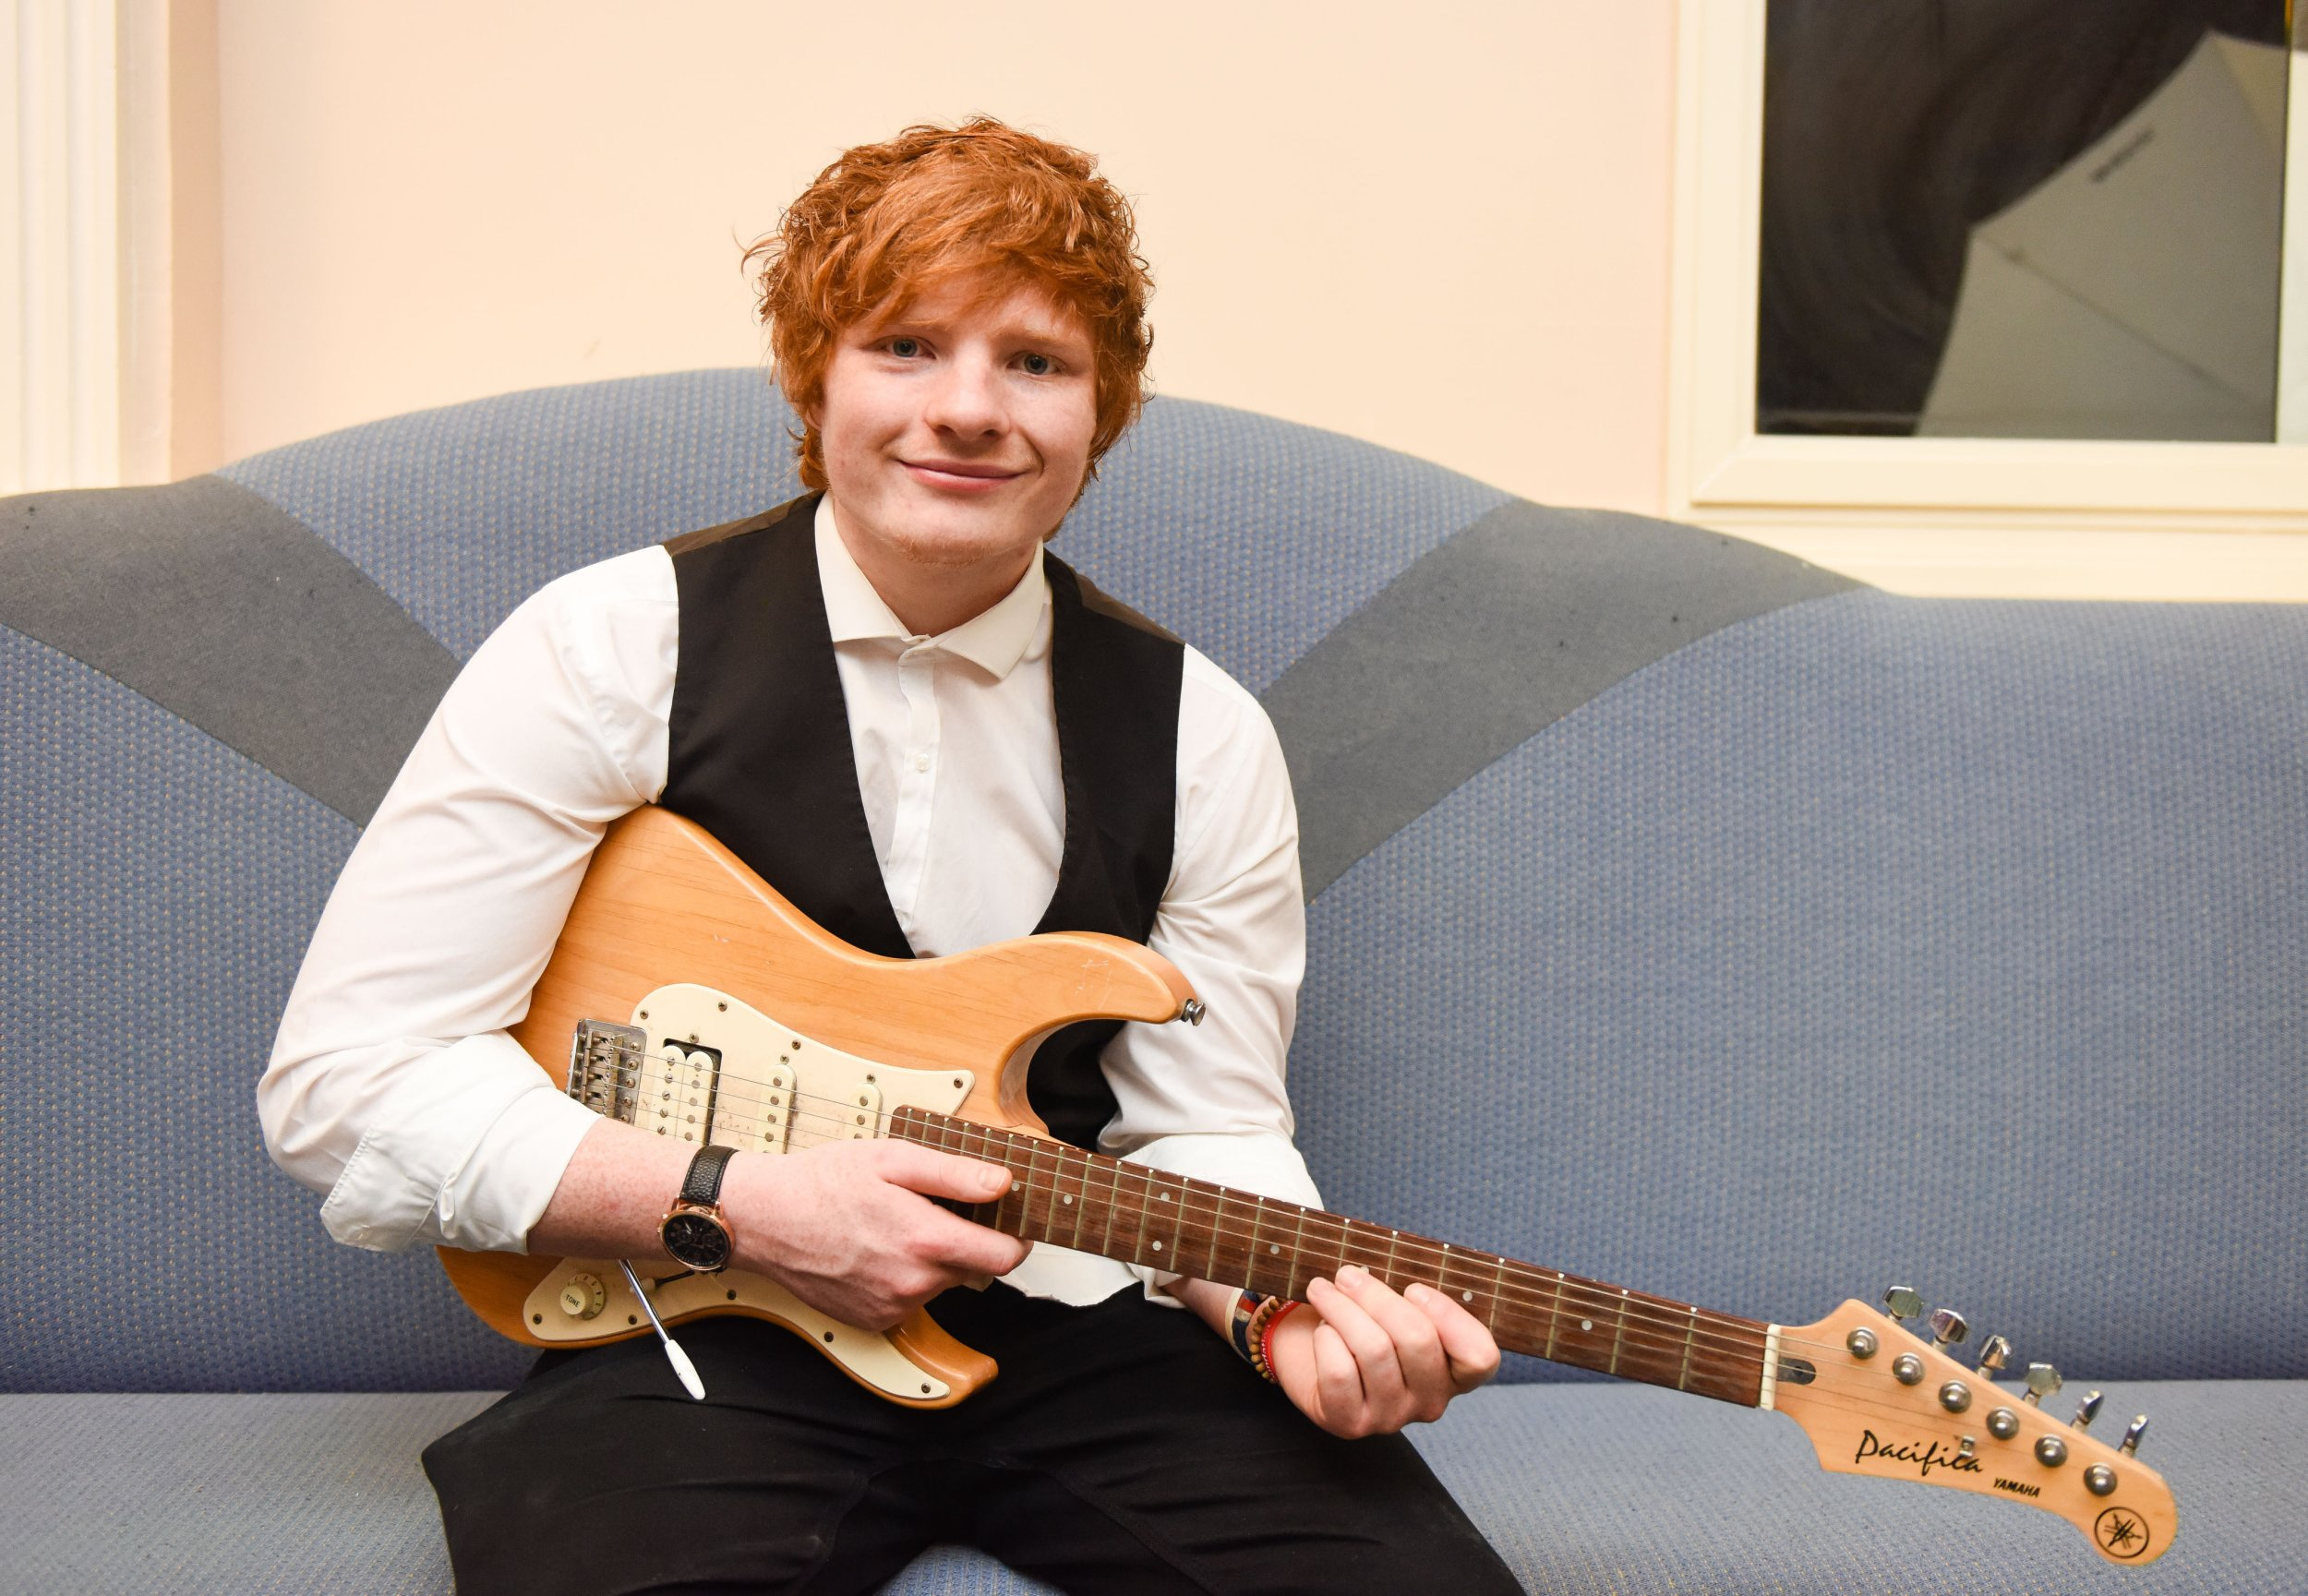 PIC BY IAIN WATTS/MERCURY PRESS (PICTURED: ED SHEERAN LOOKALIKE TY JONES, 21) A man who looks IDENTICAL to Ed Sheeran says he struggles to get a girlfriend because he's constantly bombarded by legions of female fans - who make his partners jealous. Ty Jones, from Sale, Manchester, finds it hard to tell if women actually even like him for who he is or are just looking for the next best thing to the pop star. The 21-year-old, who is even the same height as Ed, sometimes struggles to even leave the house because people are always wanting to talk to him and know if he's the real deal. Growing up, he was always shy and hated attention, but since the rise of the pop singer has had to learn how to deal with hundreds of fans. SEE MERCURY COPY